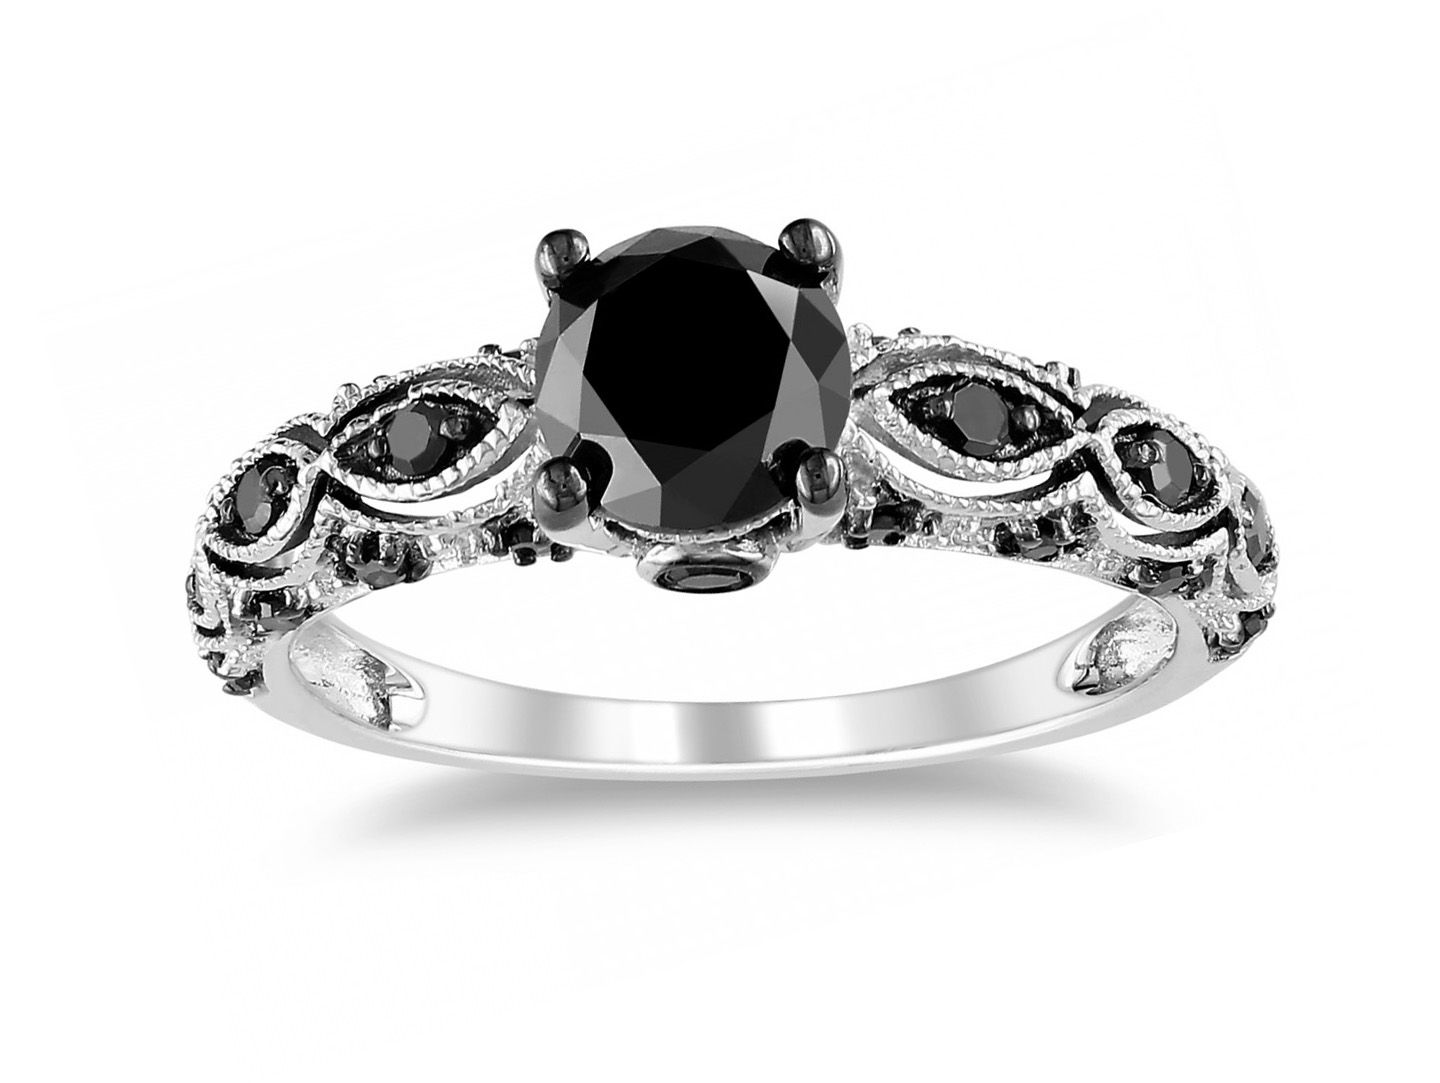 black and white wedding rings yahoo image search results - Black And White Wedding Rings